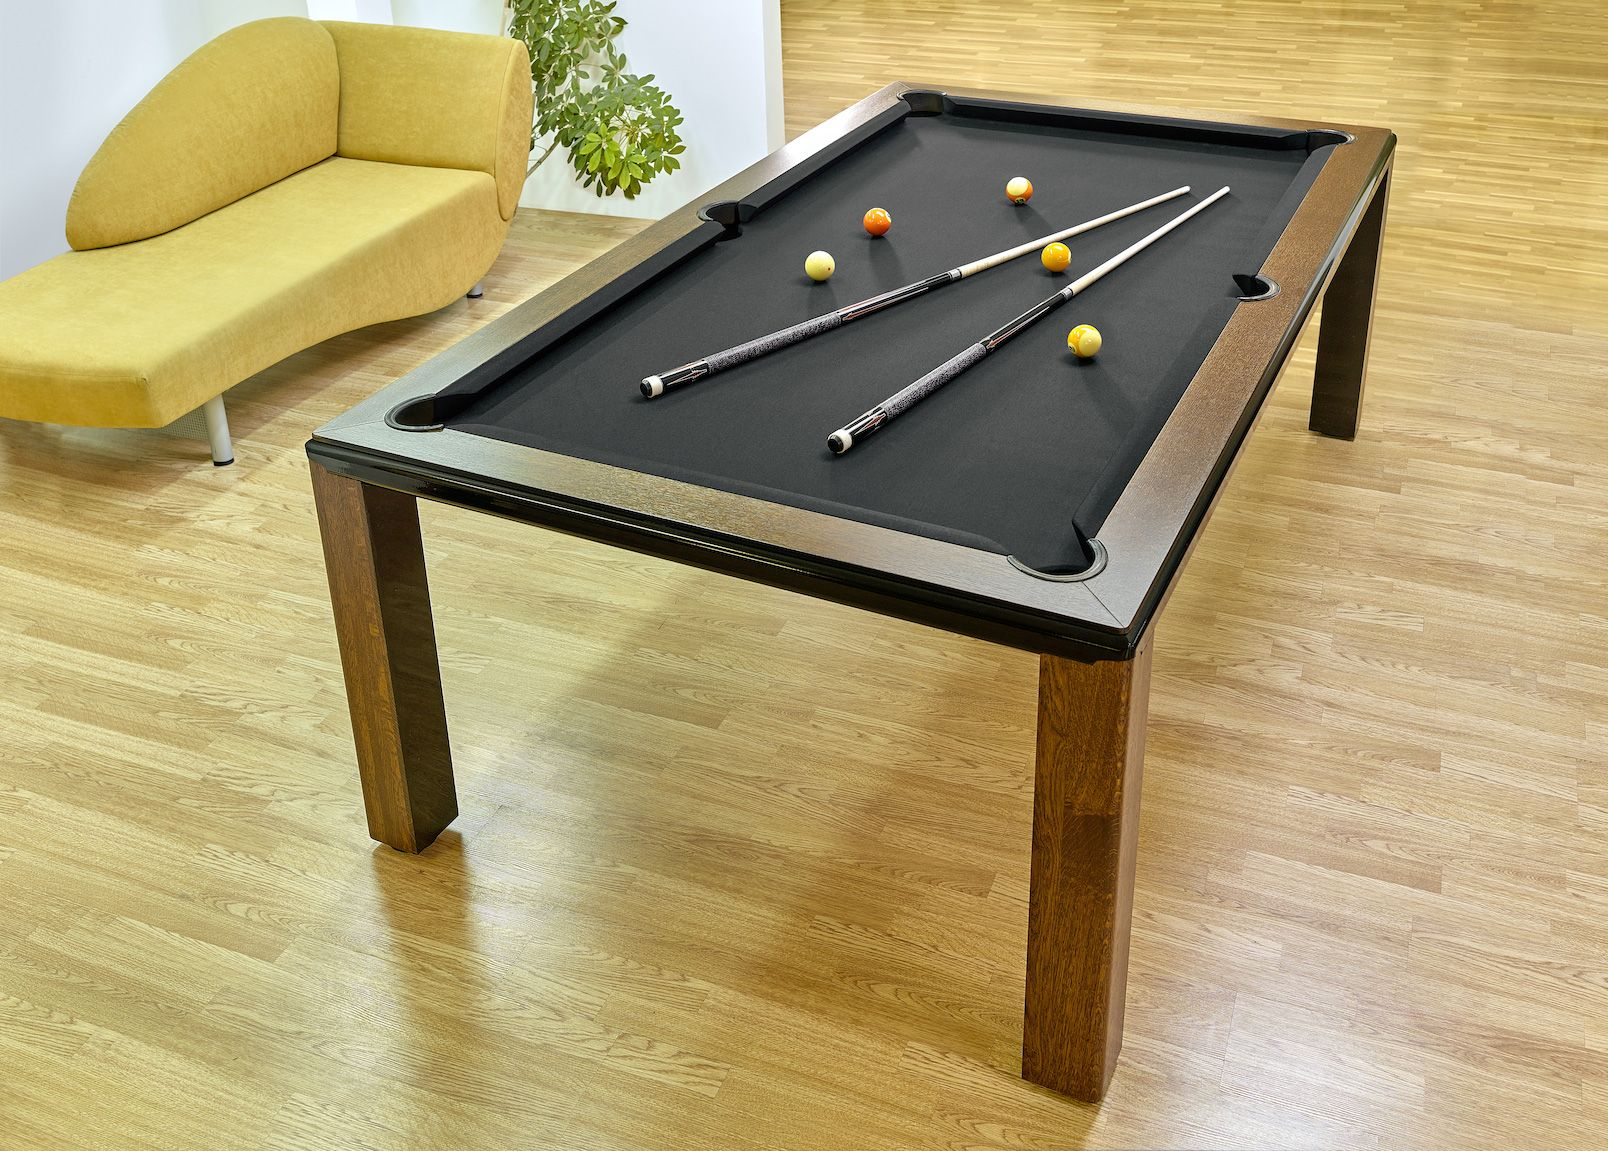 Convertible Table By Vision Billiards Can Be Used As Both A Pool - High end pool table